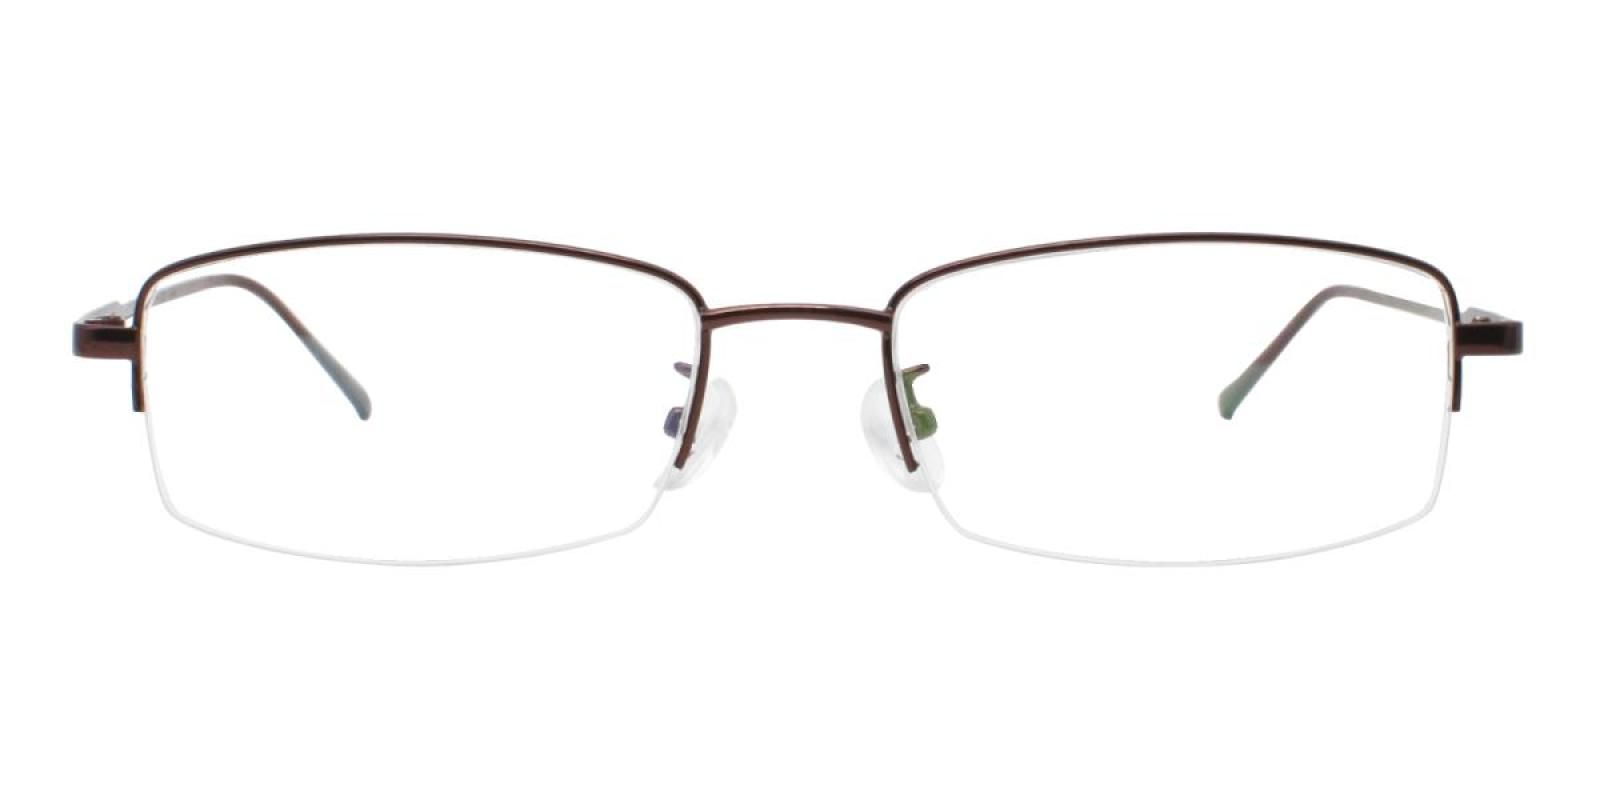 Germantown-Brown-Rectangle-Metal-Eyeglasses-additional2